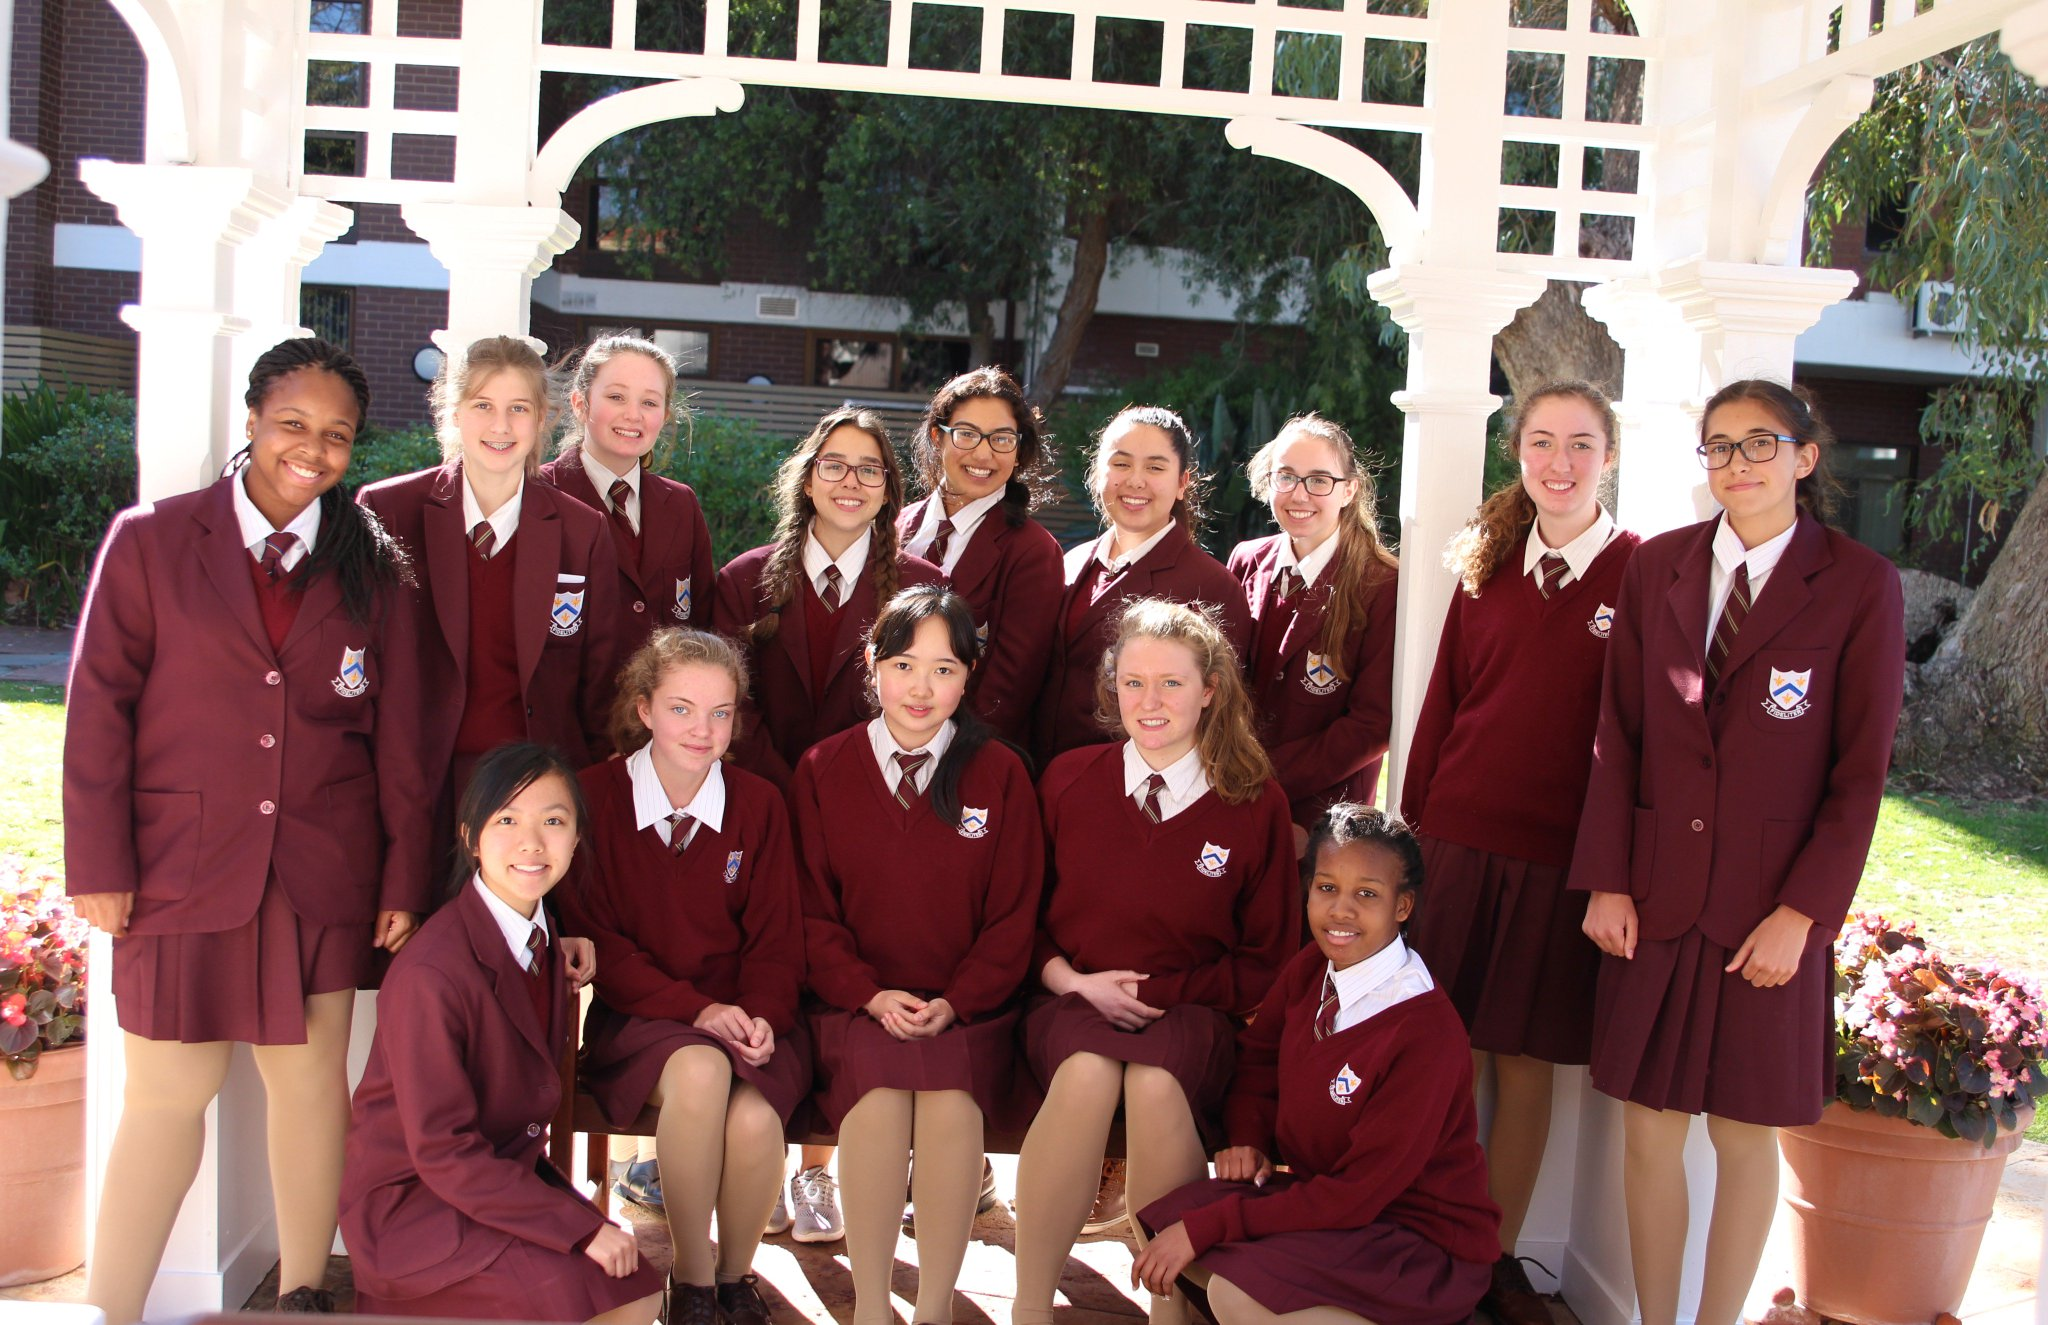 saint marie girls What better way to honor her than to offer an assumption education to these young girls of  st marie eugenie secondary school in  feast of st marie .